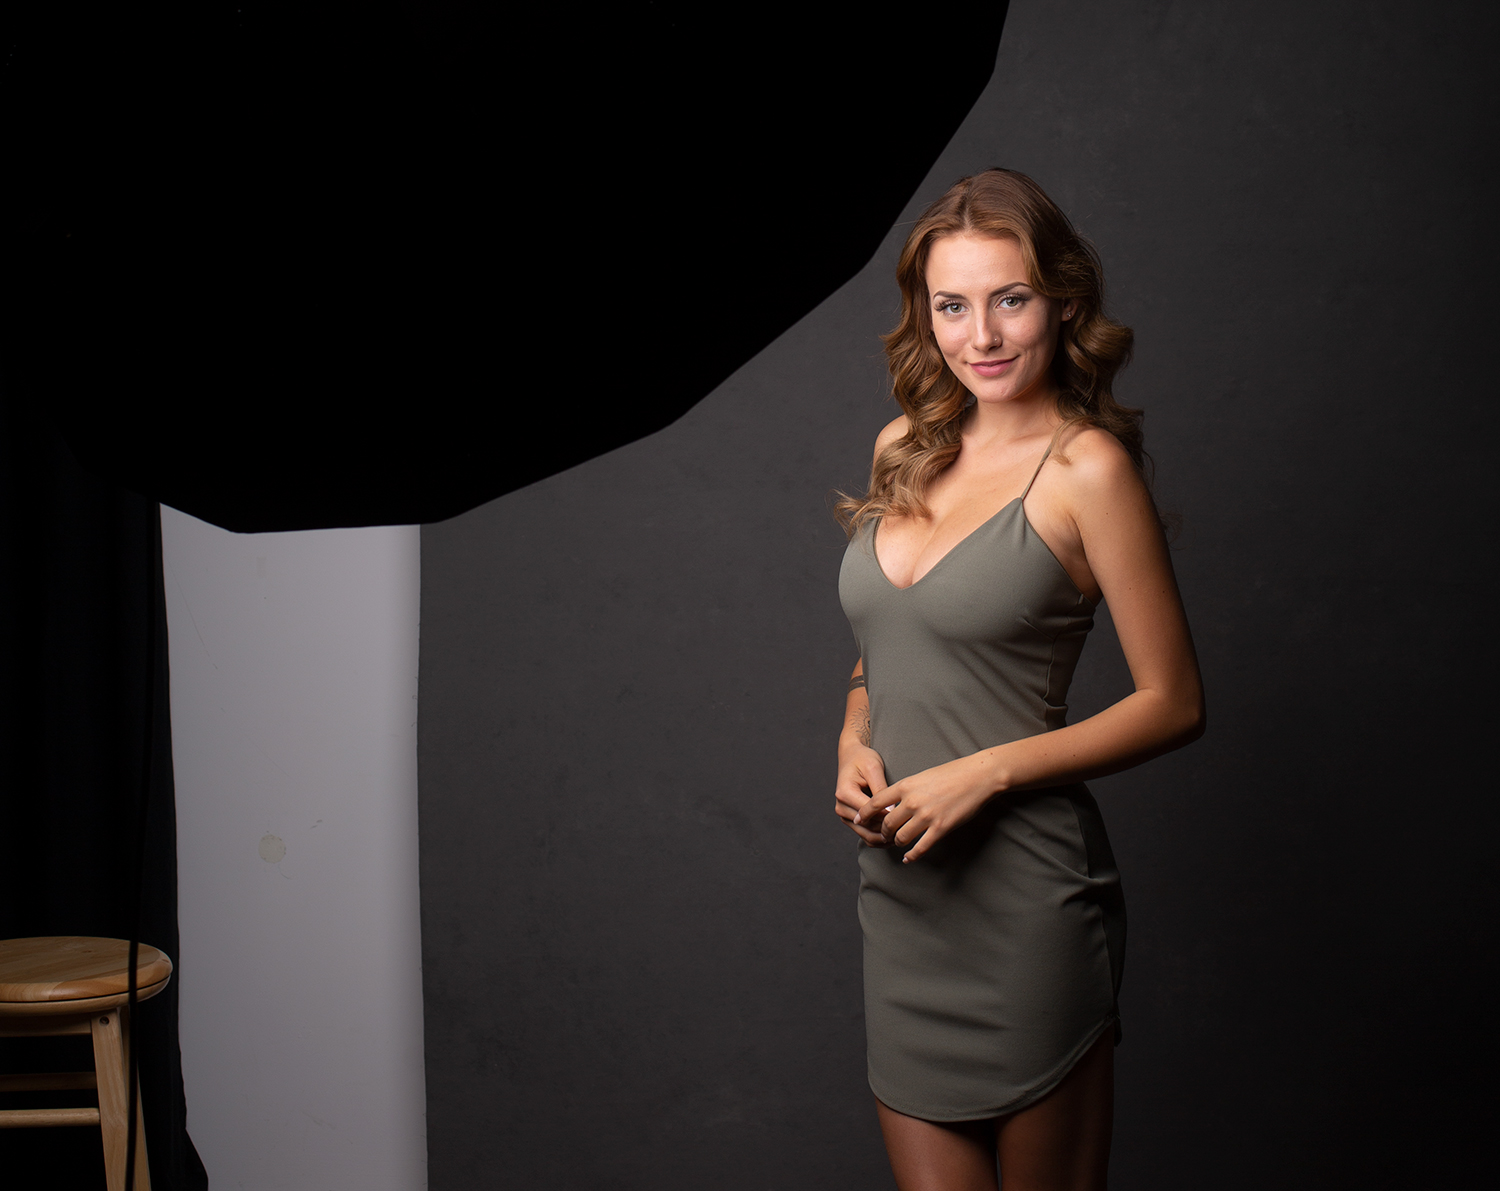 Image: Studio photography requires a lot of practice. To get better, you need to be practicing as mu...